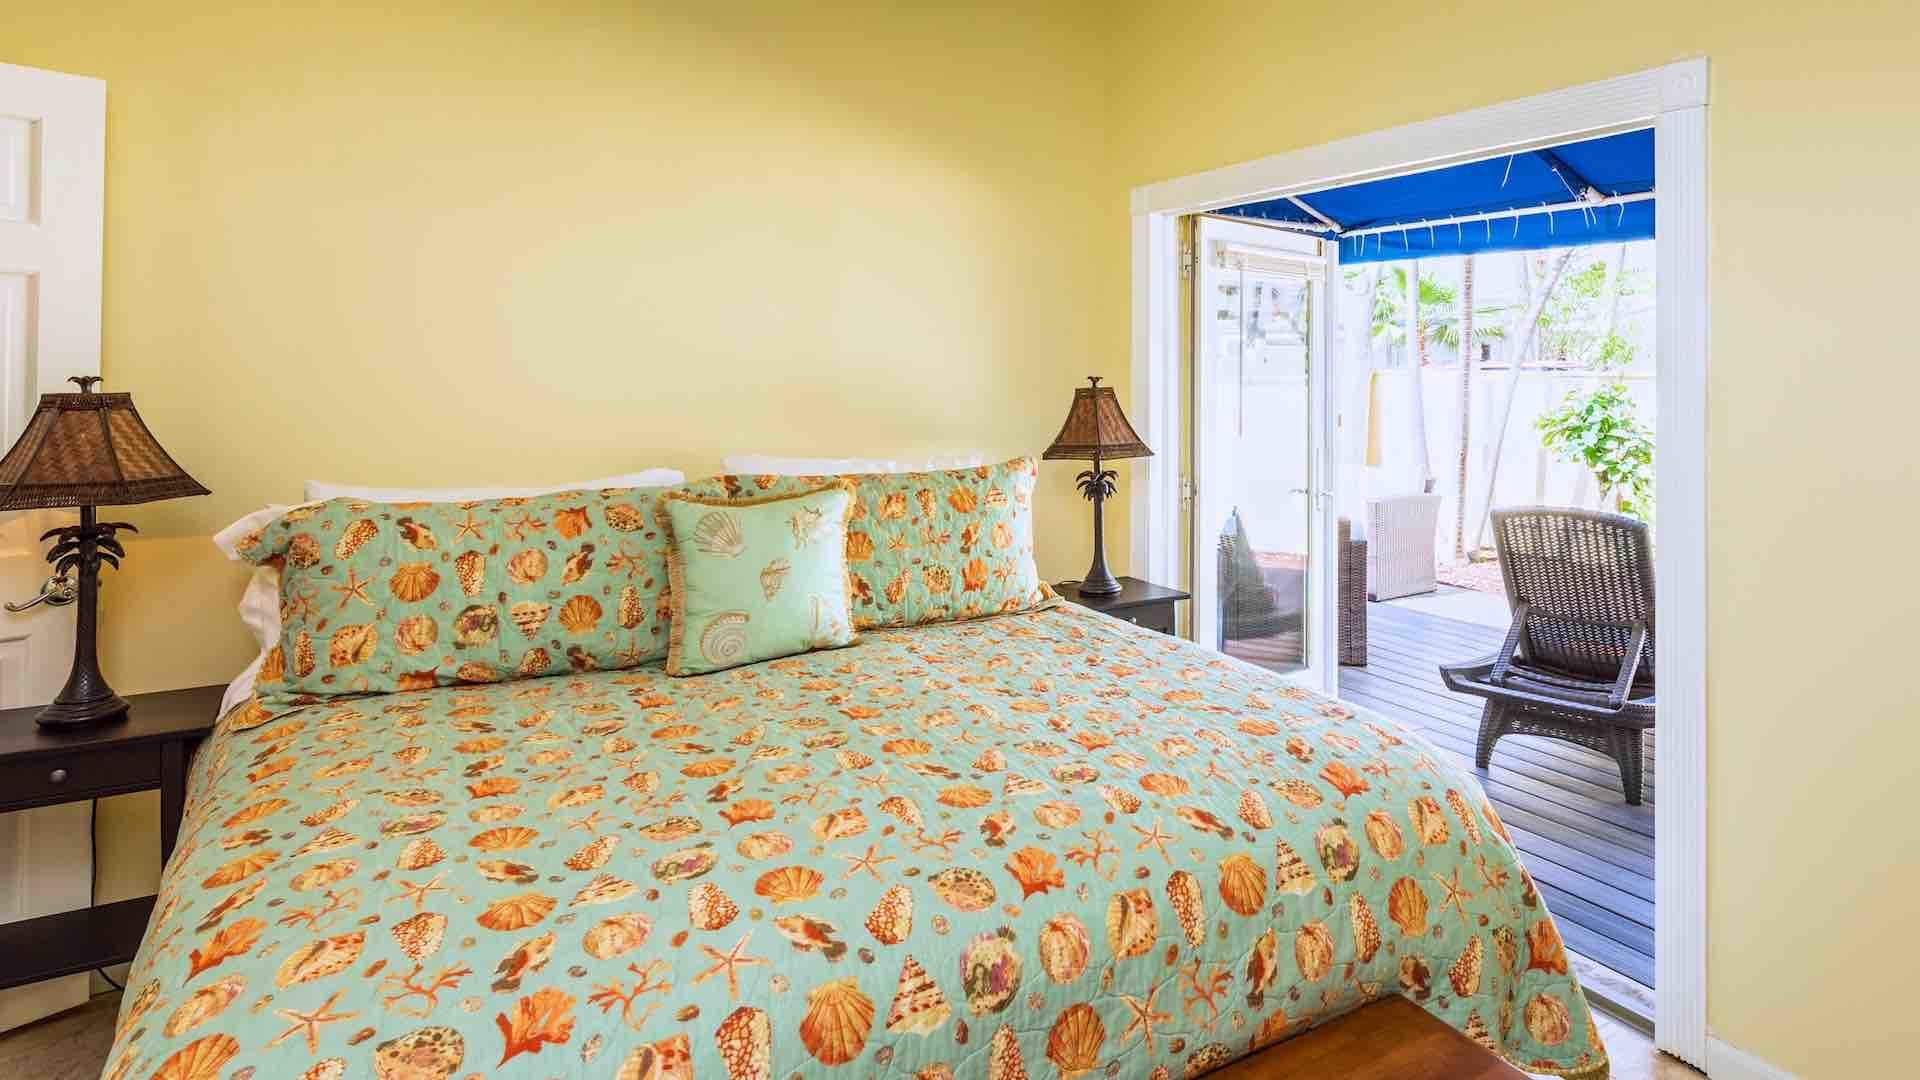 The first master suite opens up to the sun deck located on the side of the house...